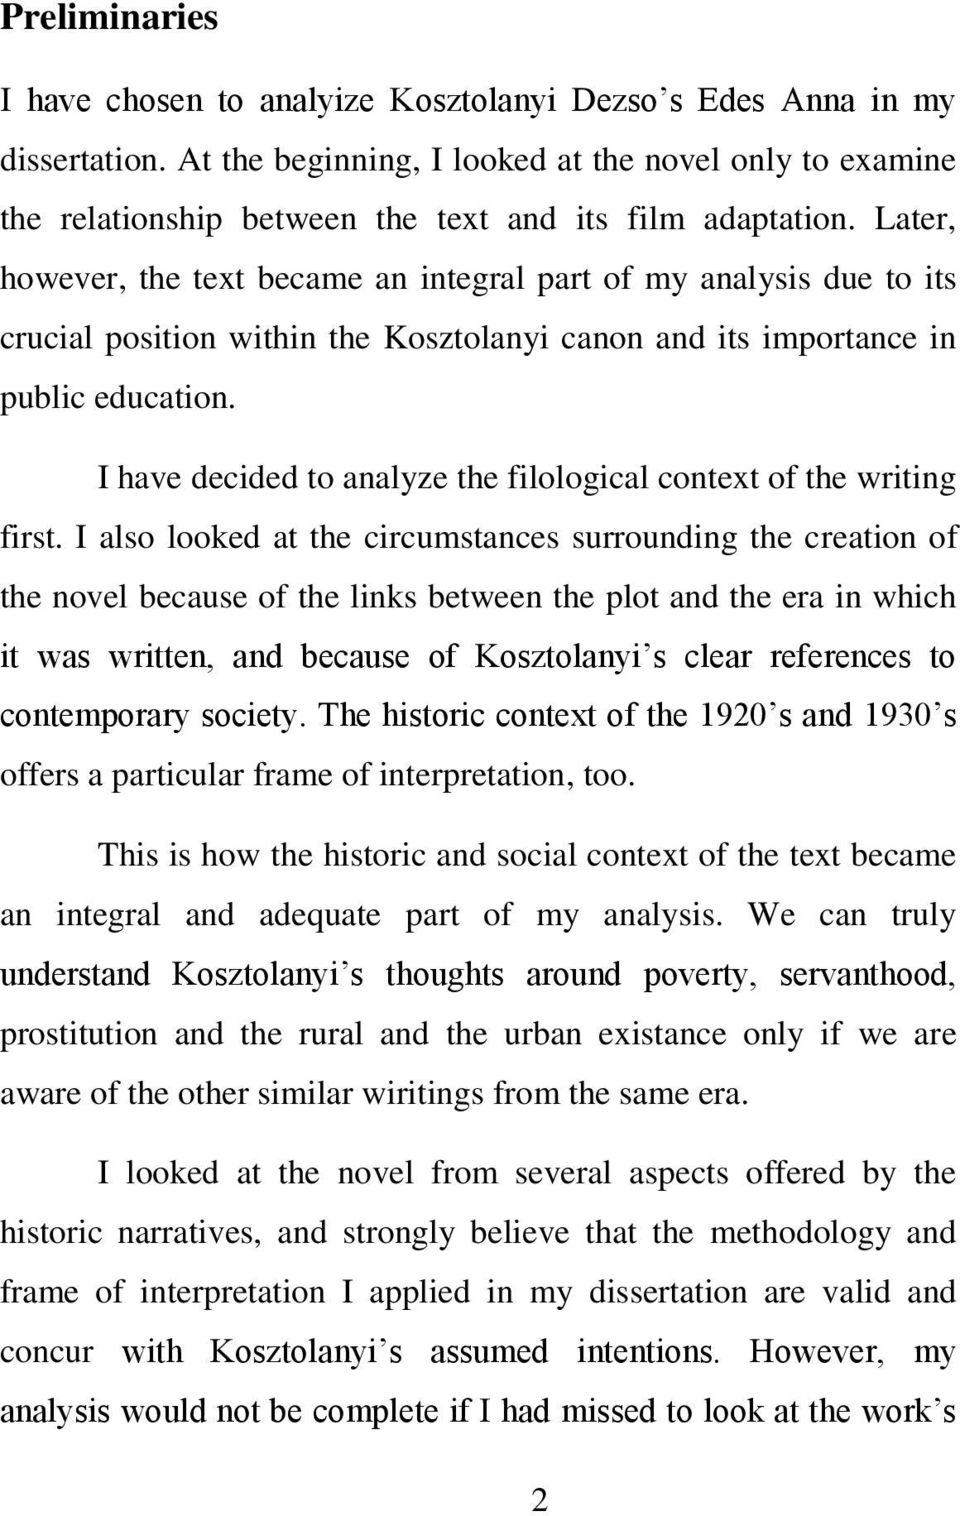 Later, however, the text became an integral part of my analysis due to its crucial position within the Kosztolanyi canon and its importance in public education.